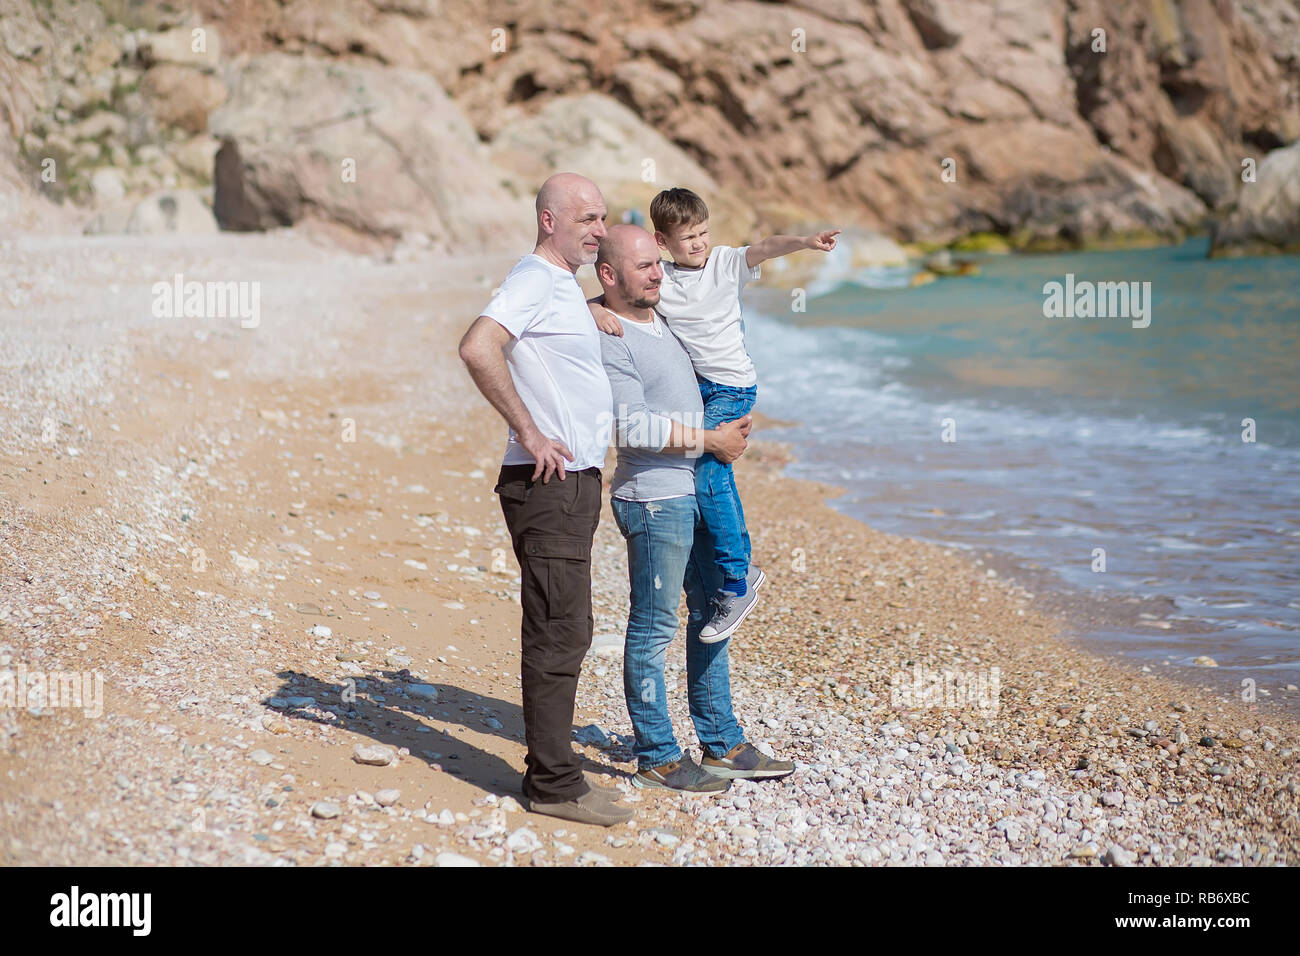 Family of grandfather father and son on a rocky beach on vacation enjoying time together. - Stock Image